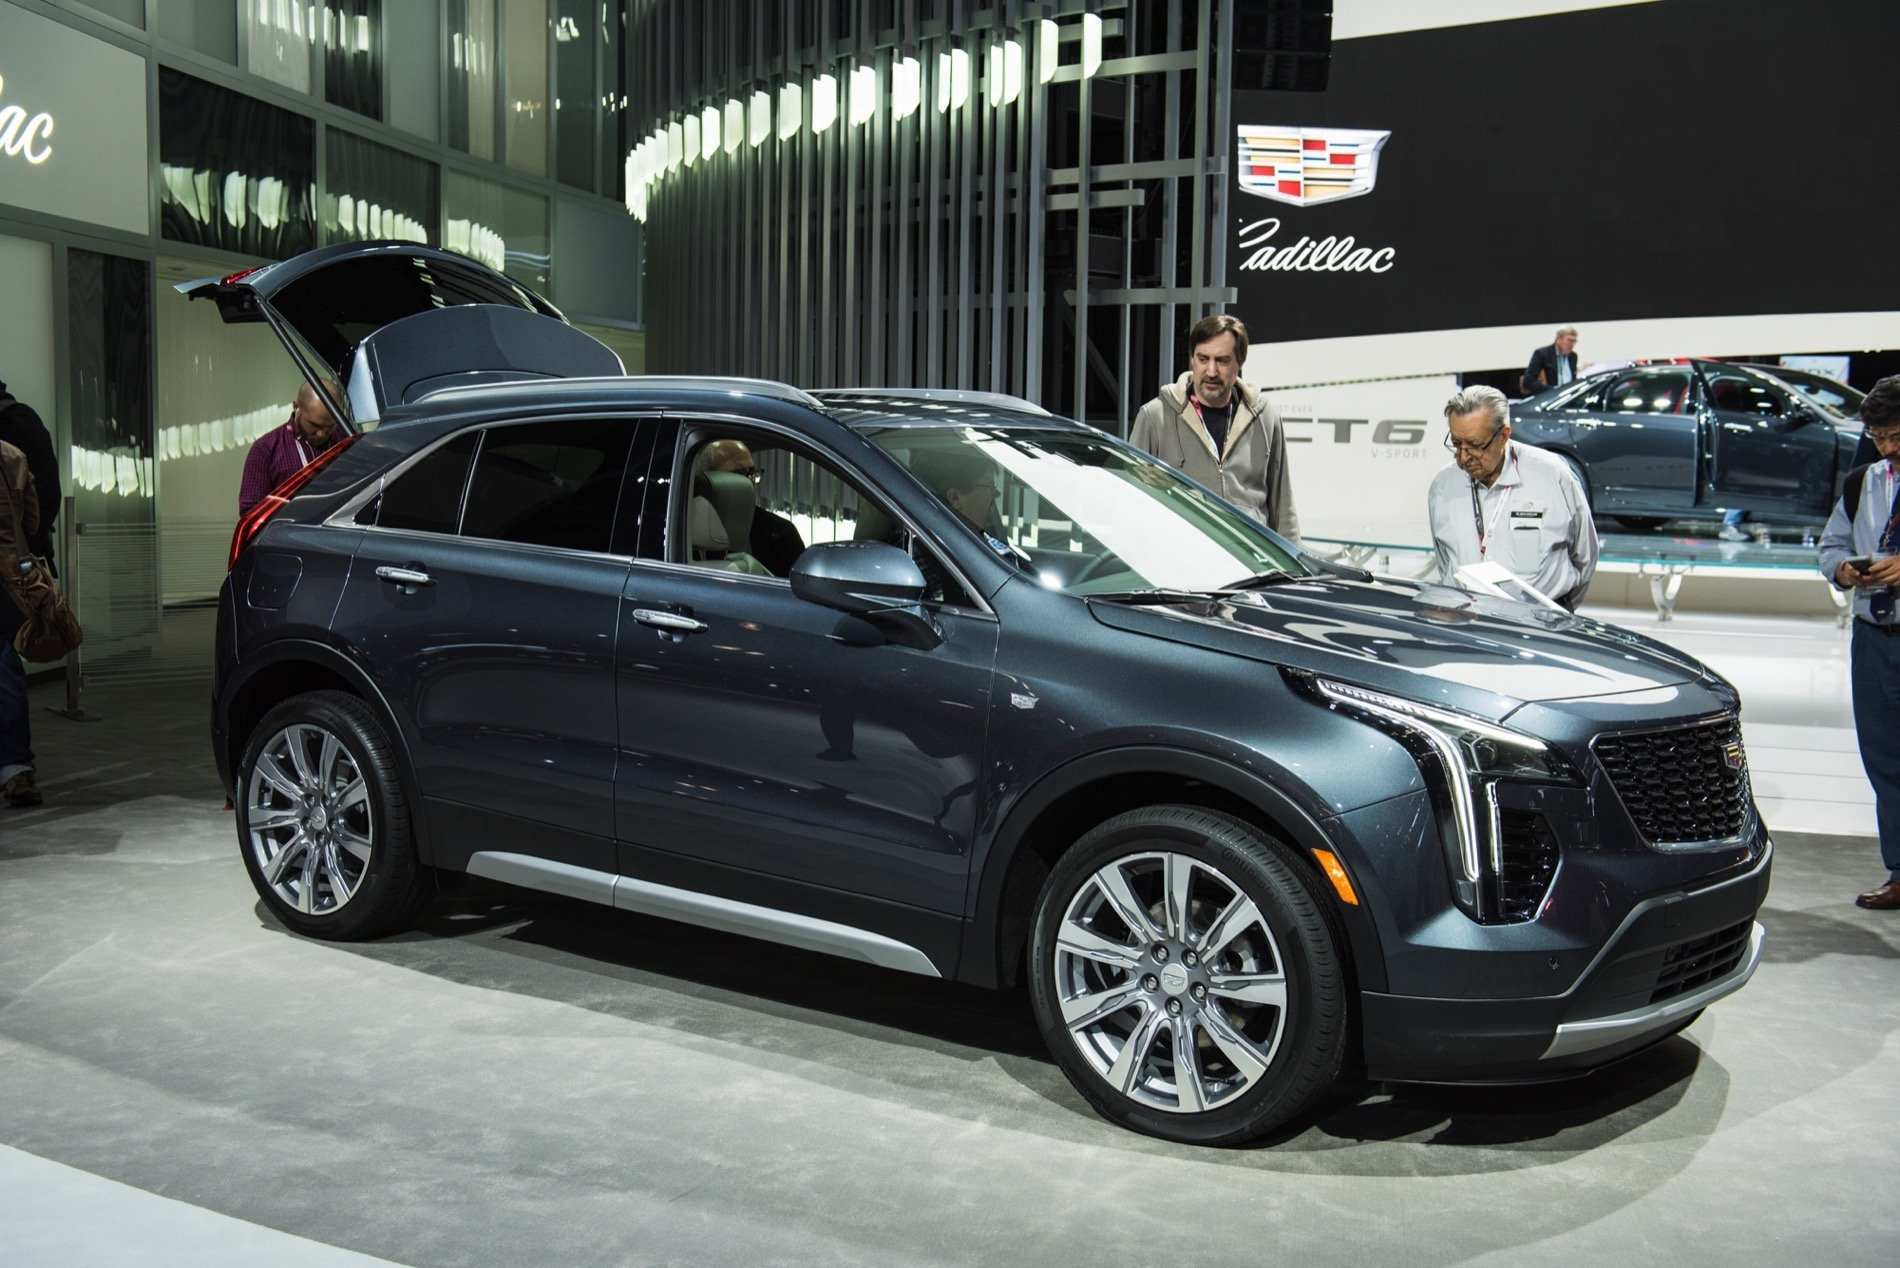 96 The 2019 Spy Shots Cadillac Xt5 Overview